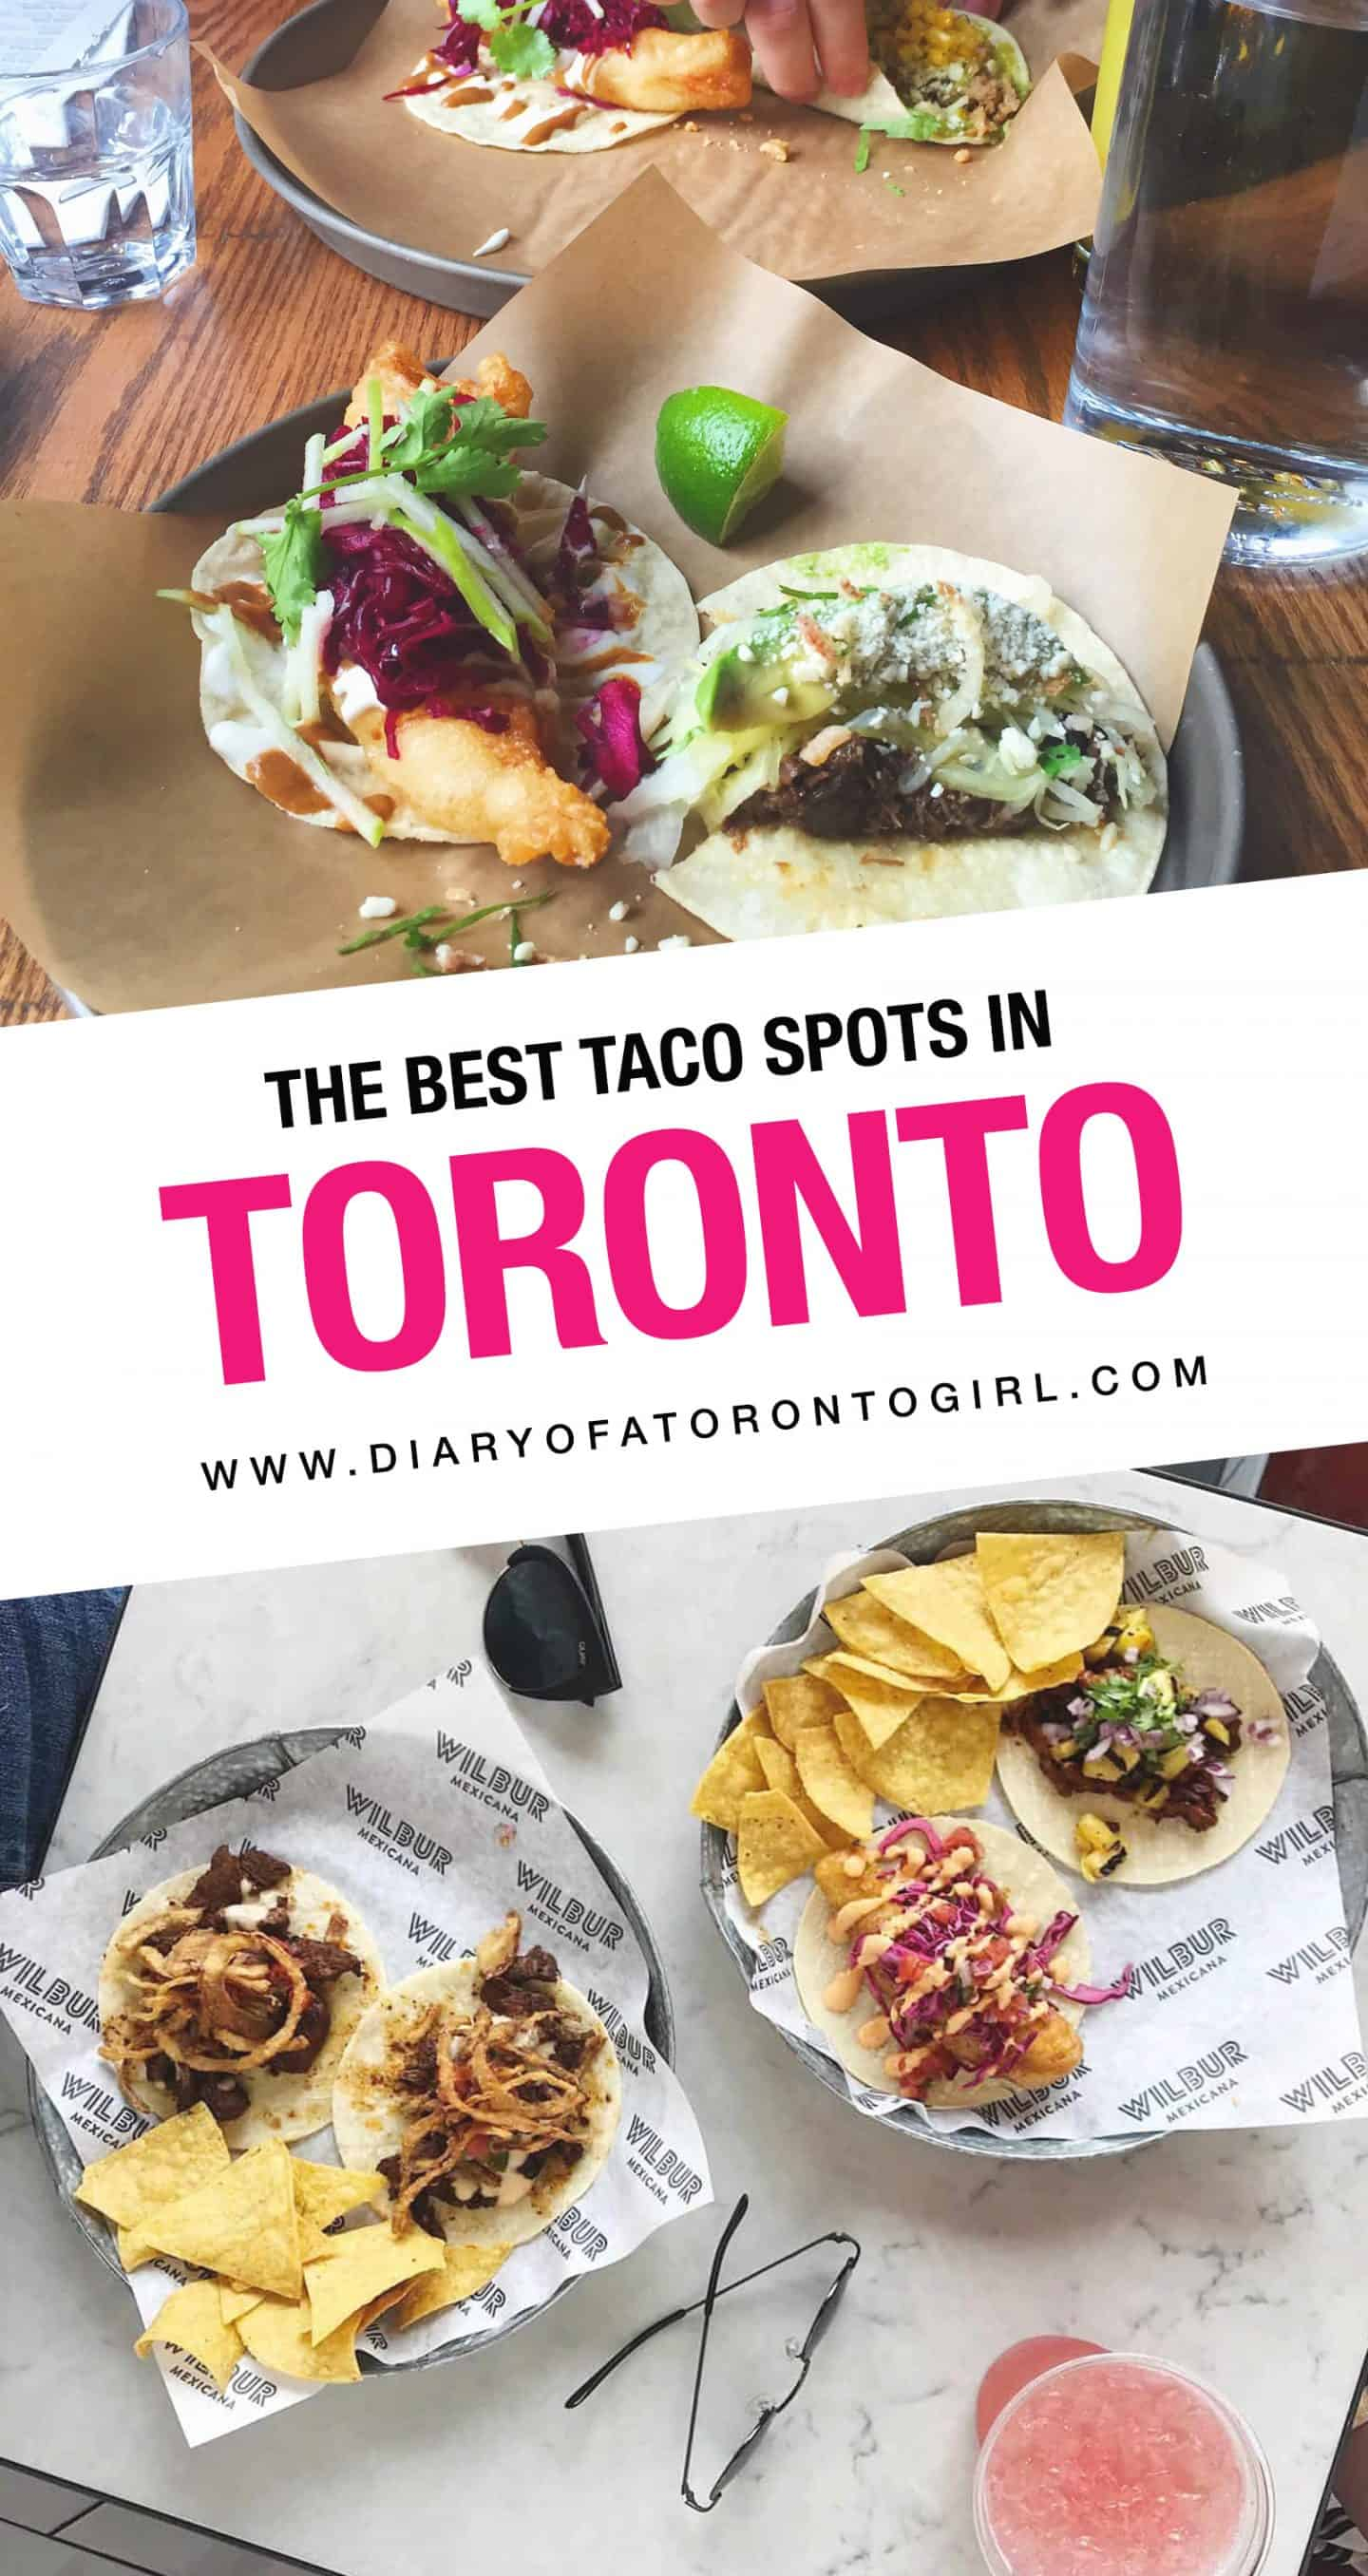 Looking for the best Toronto taco spots to visit? Here are the top restaurants to stop by for amazing and juicy tacos in Toronto!